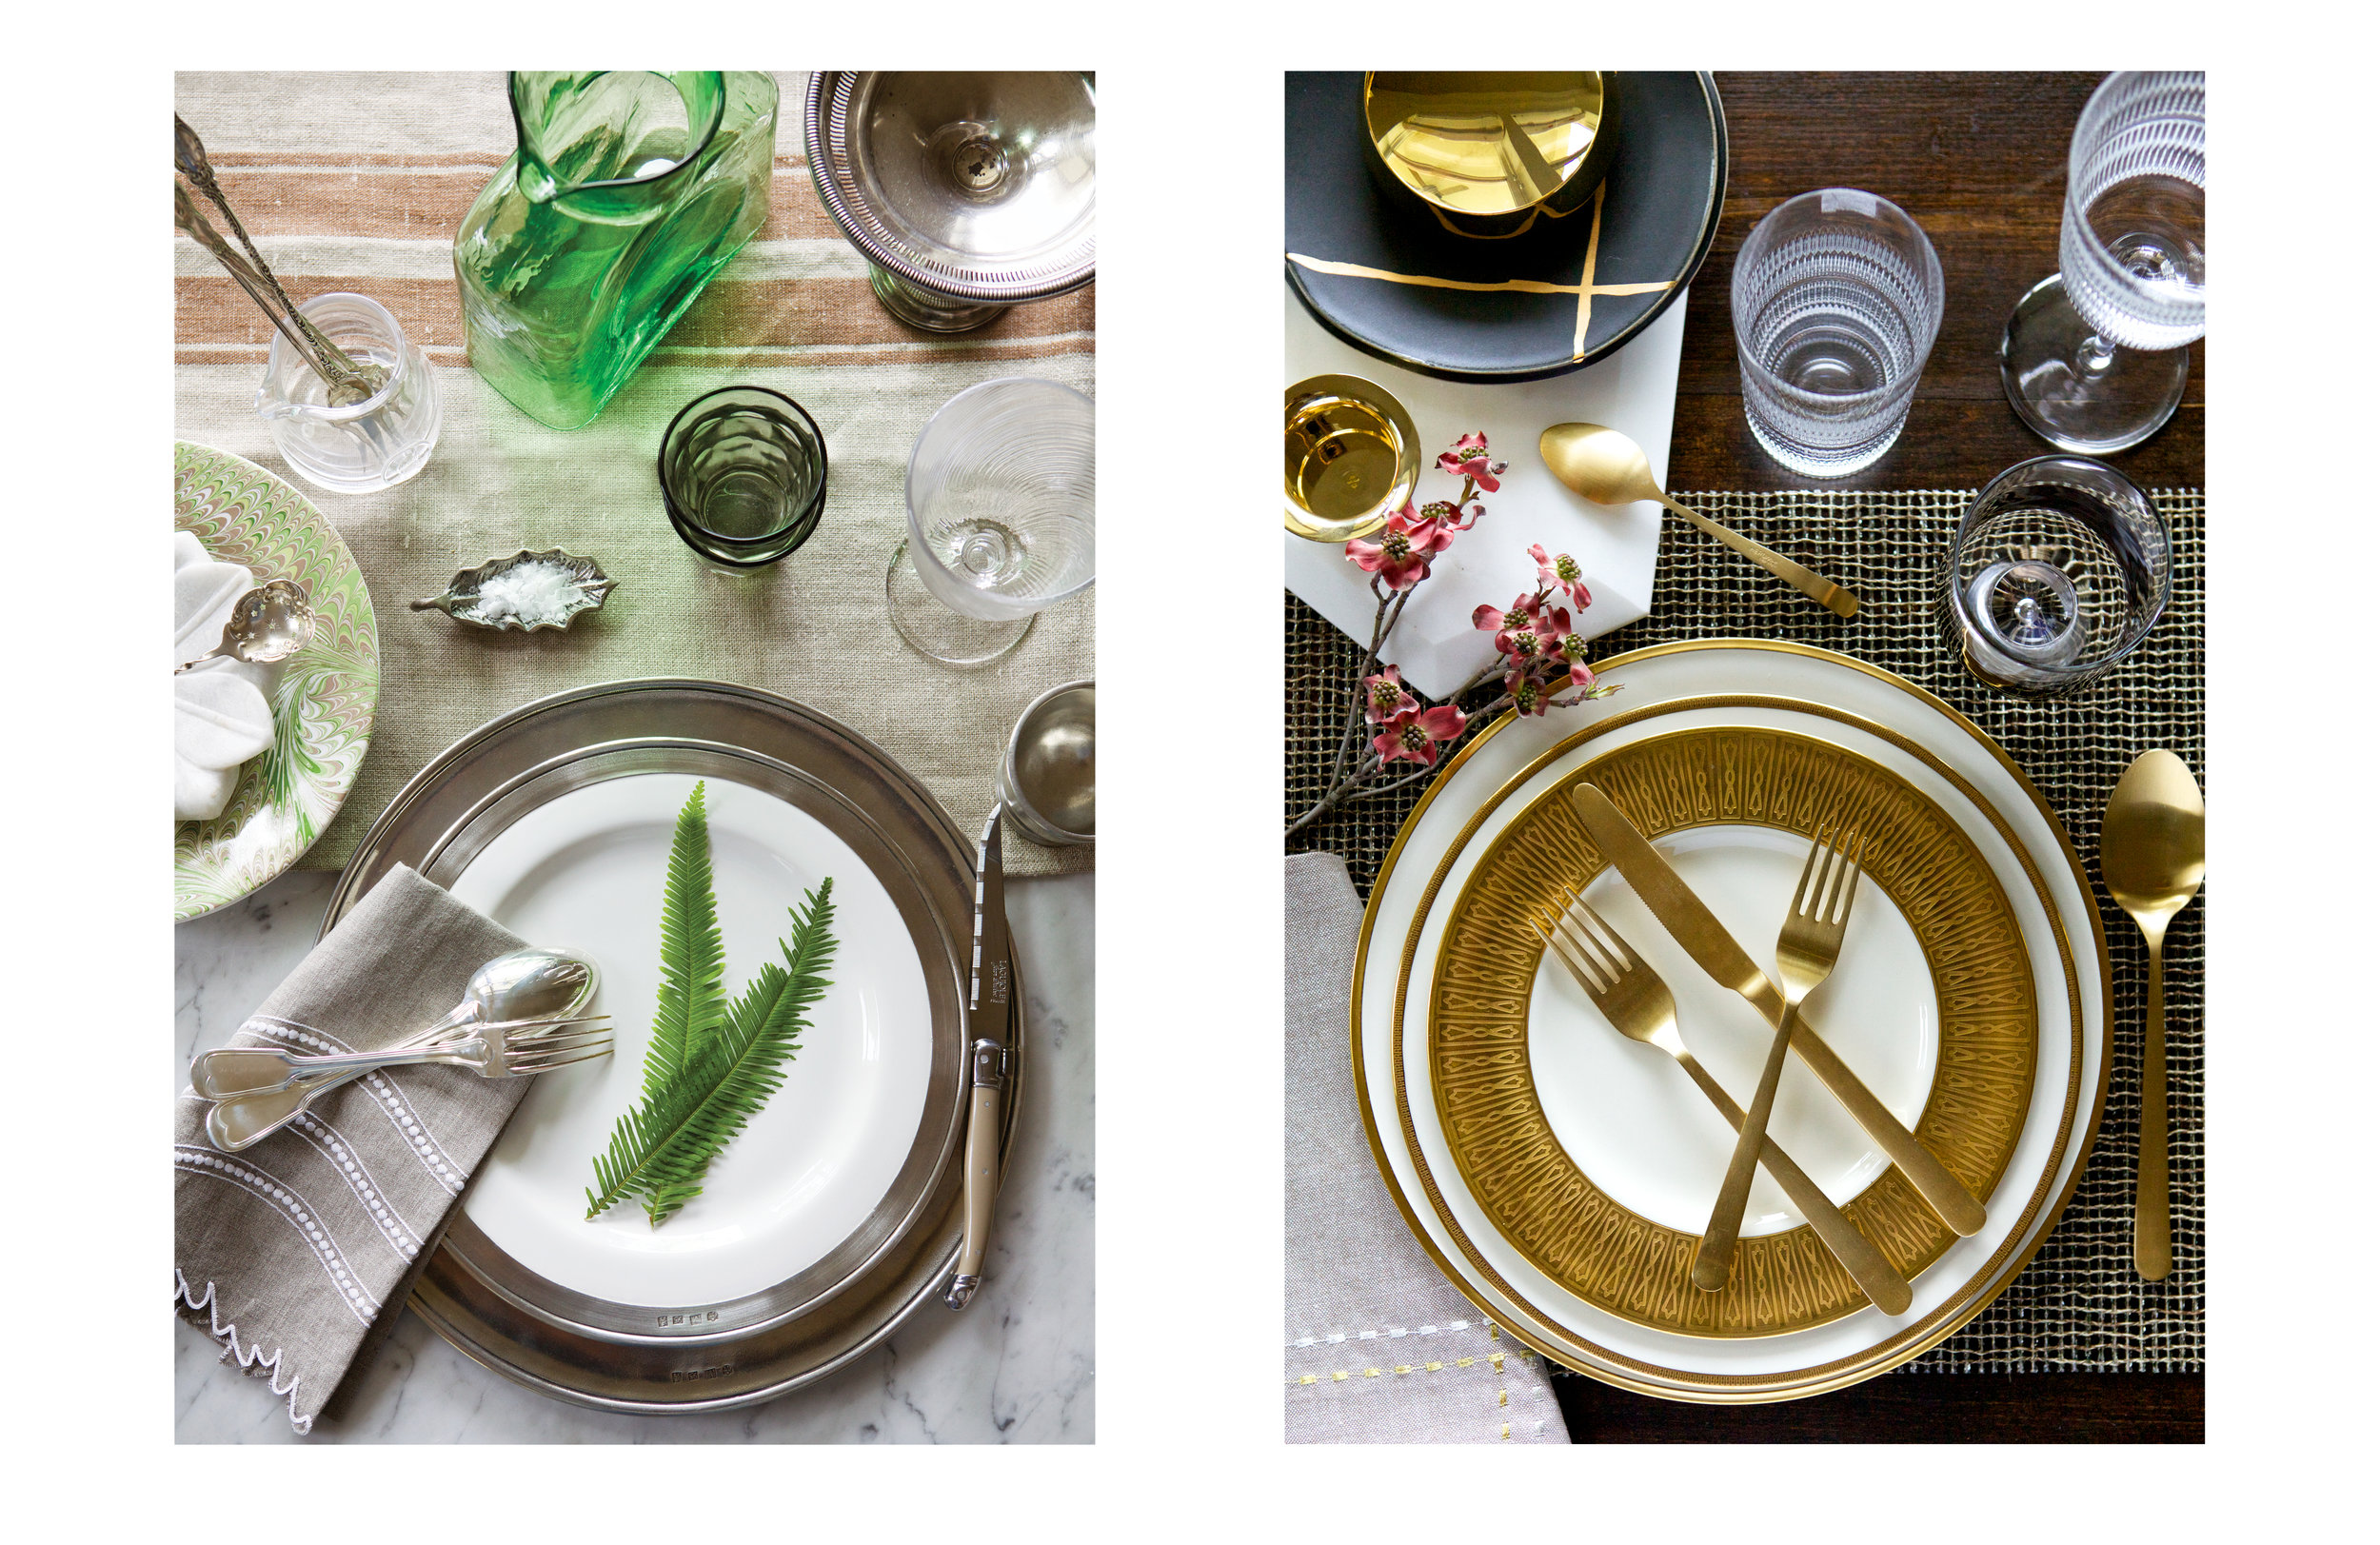 Photo: Kate LeSueur; Prop Styling: Ann Edgerton